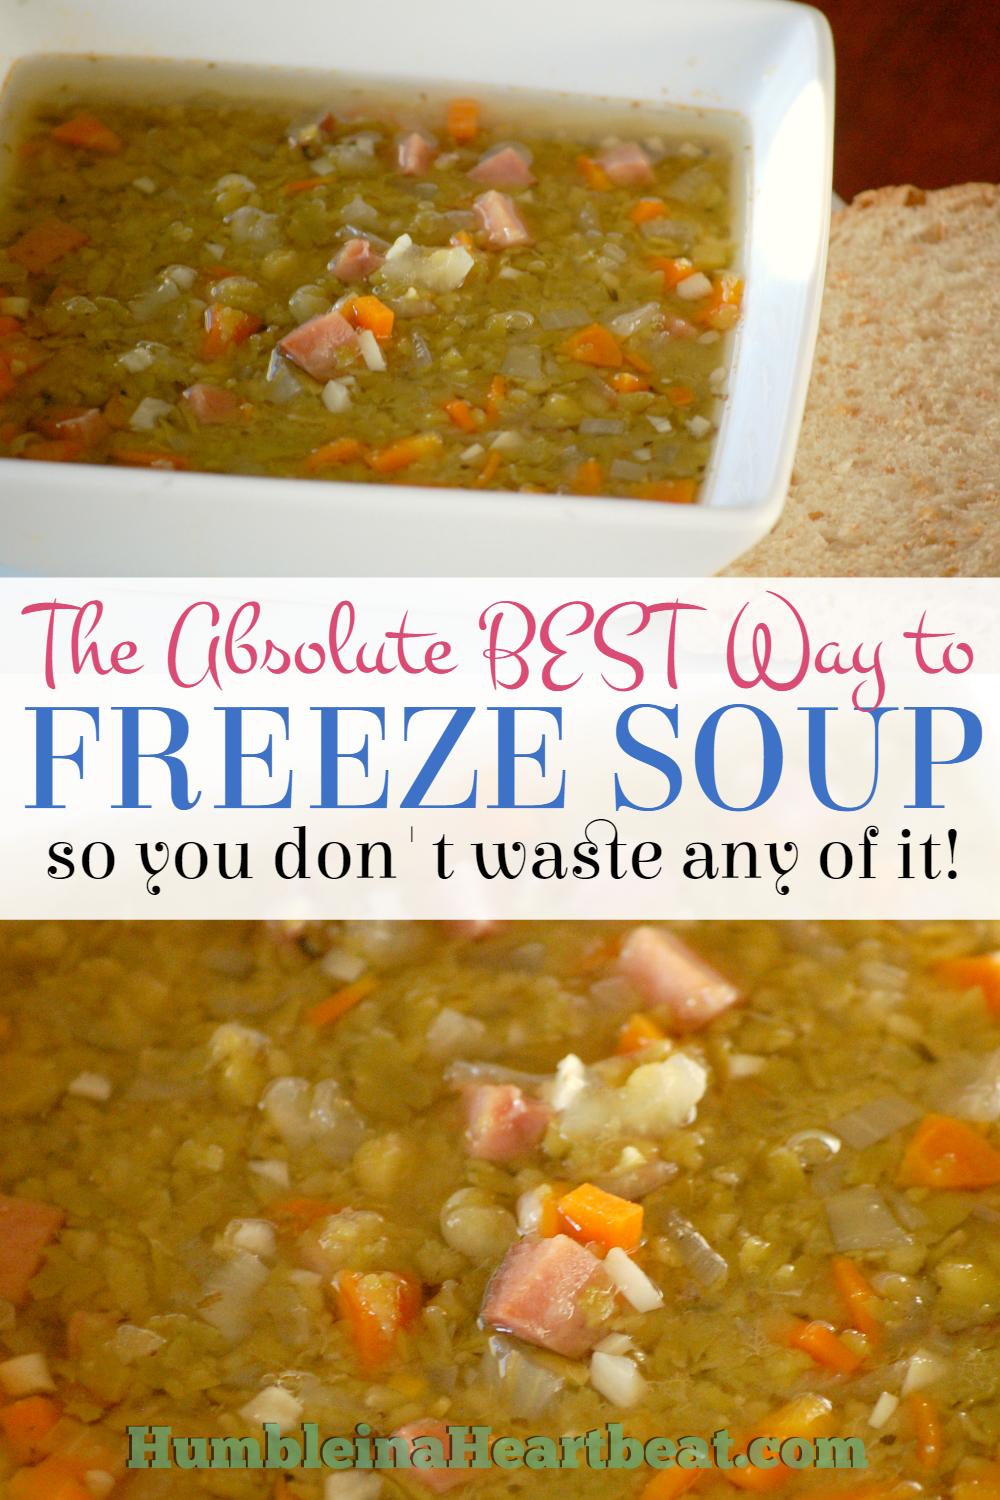 Ok, you have no idea how easy it is to freeze soup this way. So glad I pinned this! Soup's on!